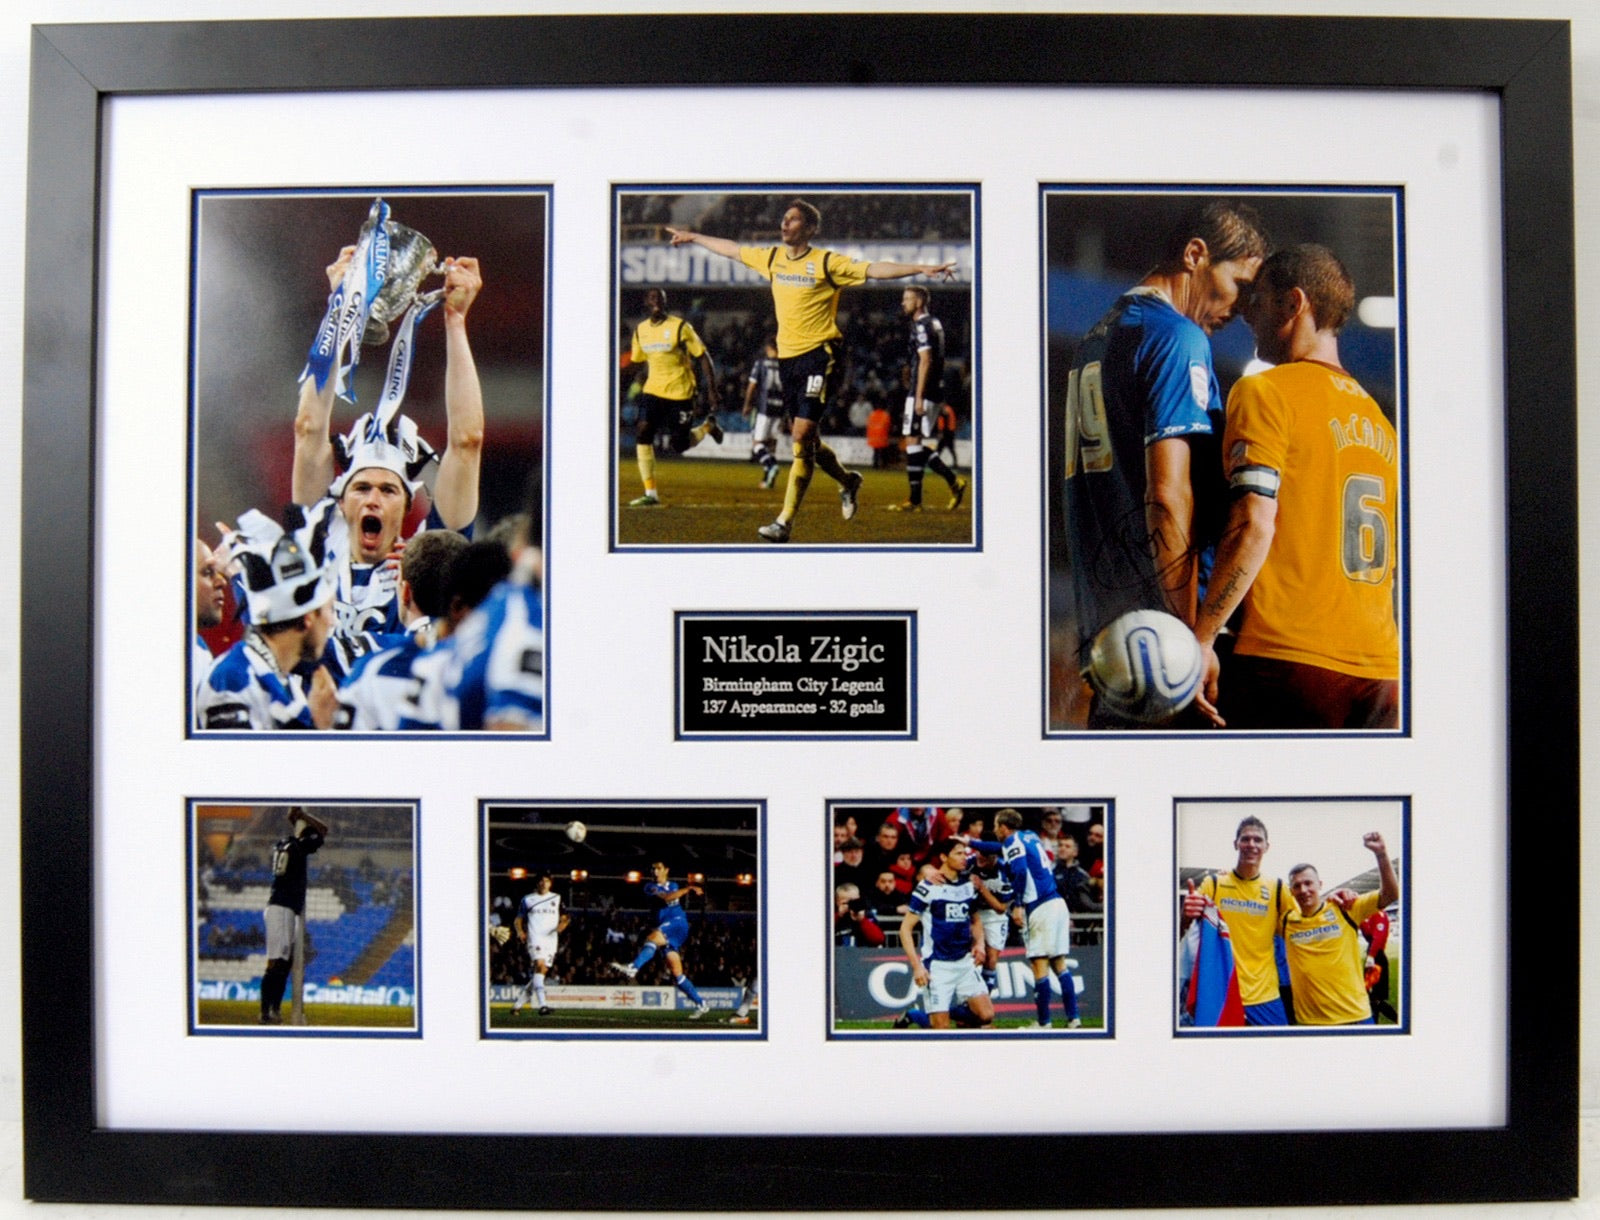 Zigic - Birmingham City Legend. Signed Frame